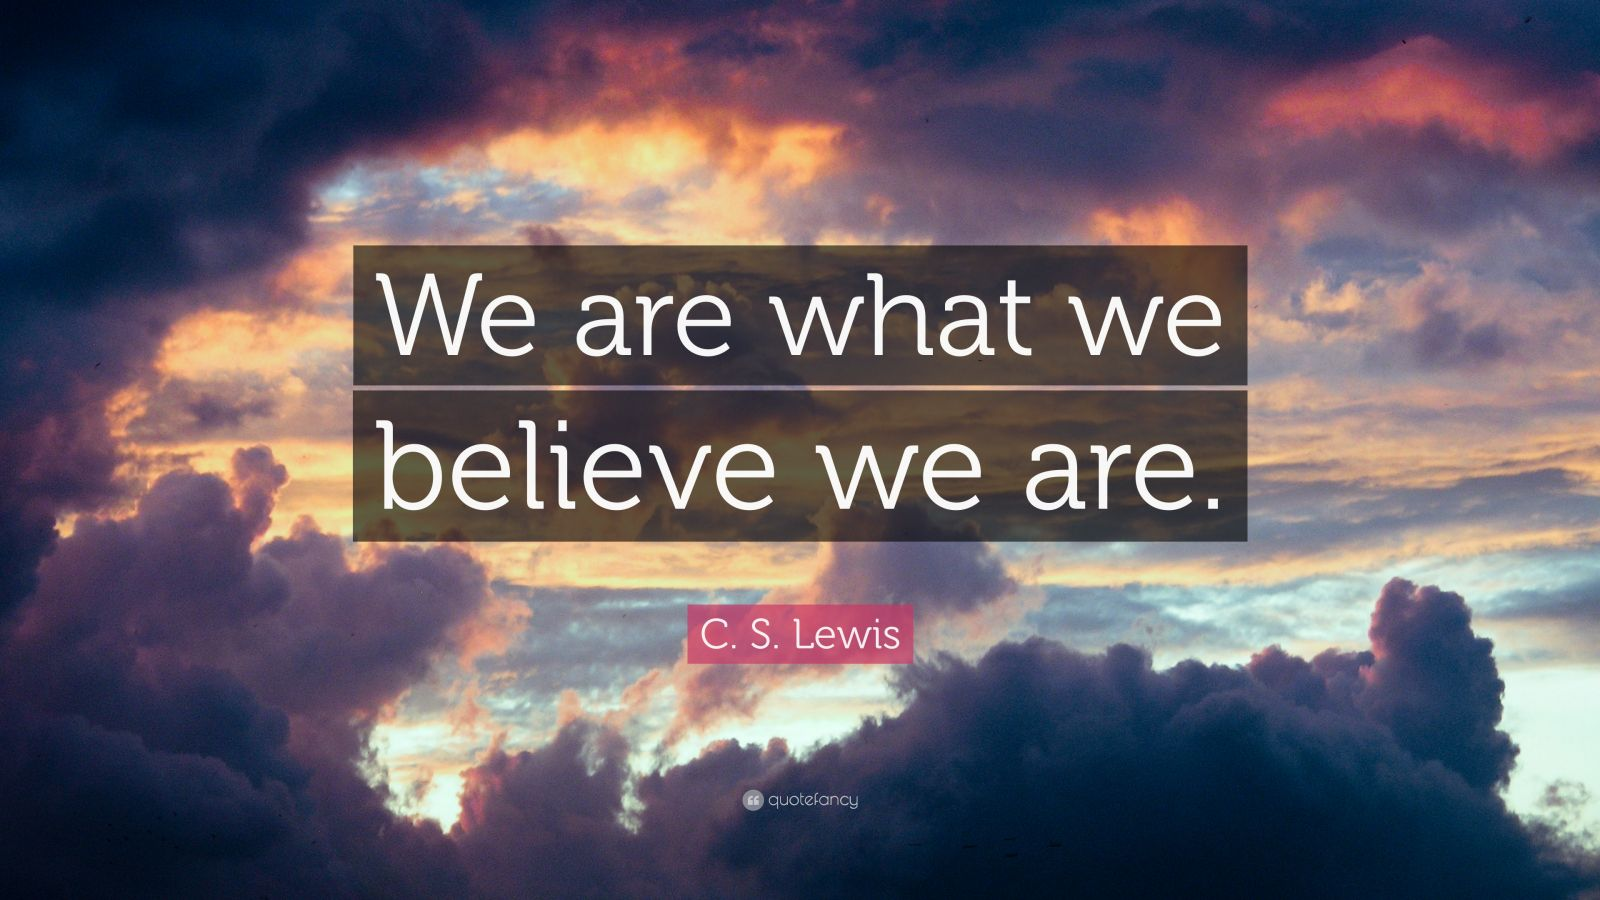 C S Lewis Quote We Are What We Believe We Are